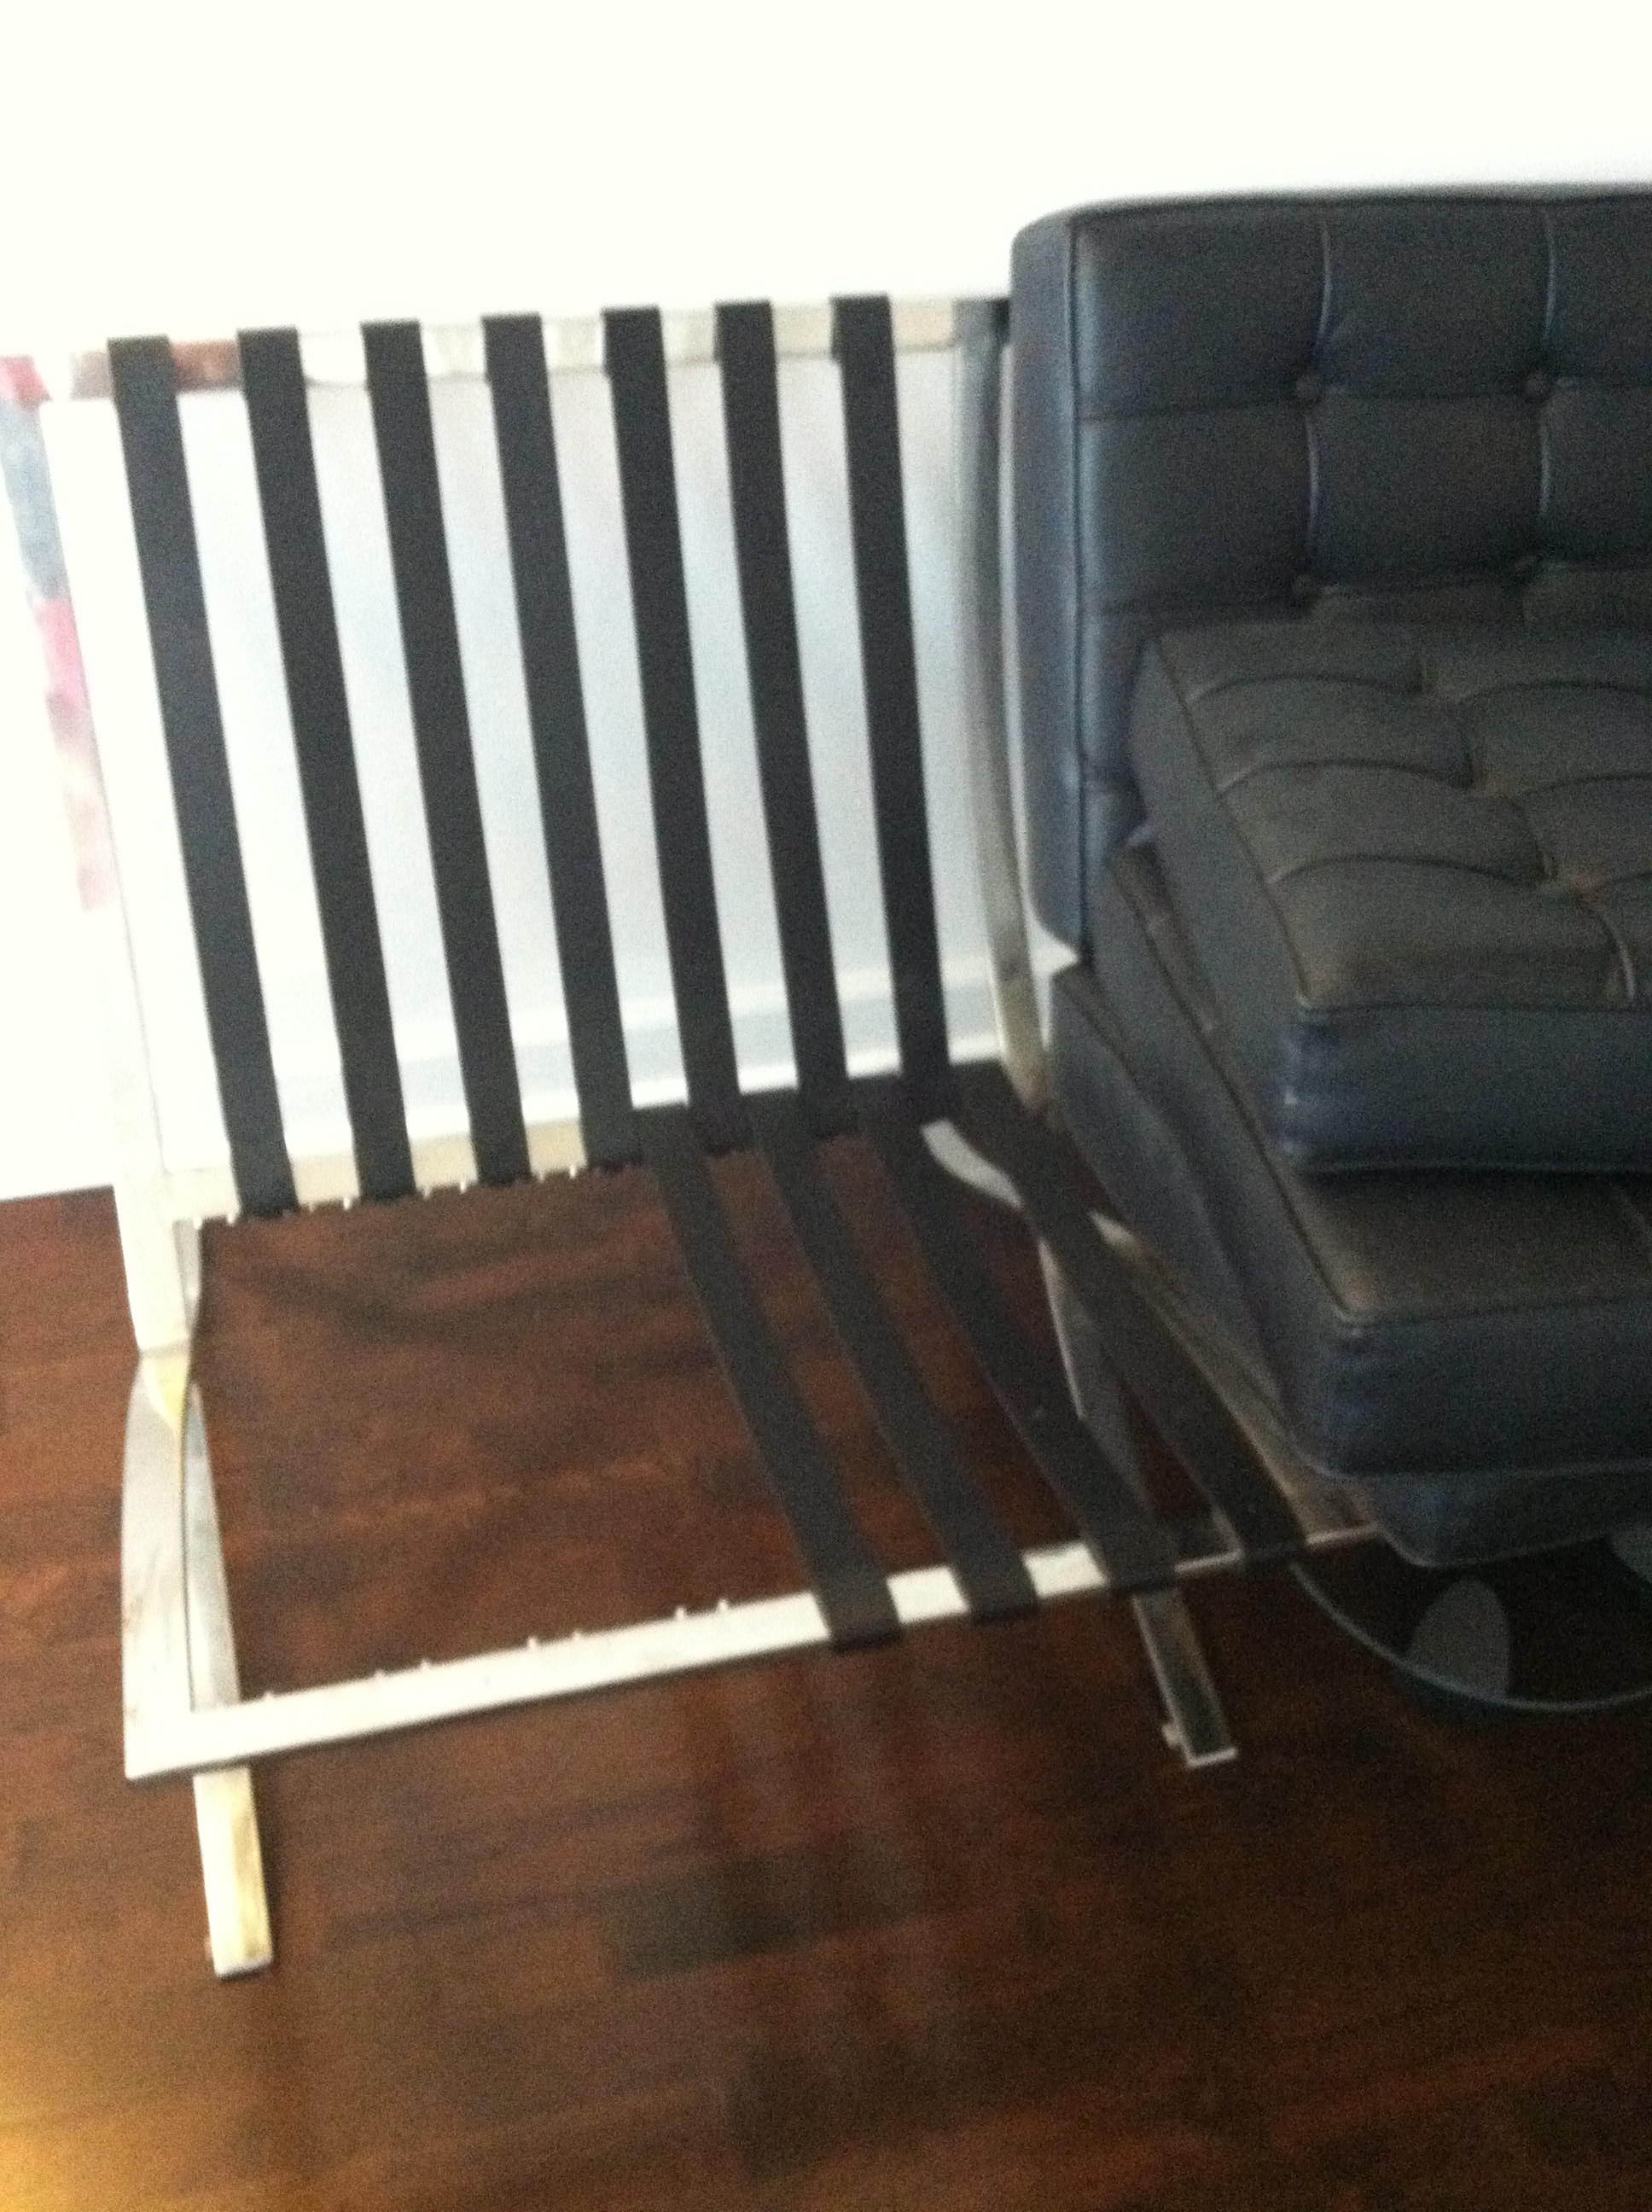 Weekend Project: Barcelona Chair Repair